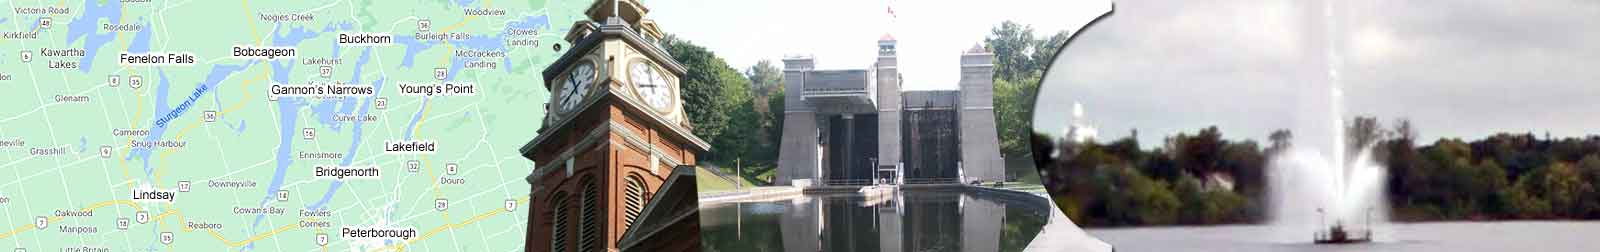 Kawartha Lakes world's highest hydraulic Lift Lock at Peterborough Ontario at The Trent Severn Waterway Lock 21